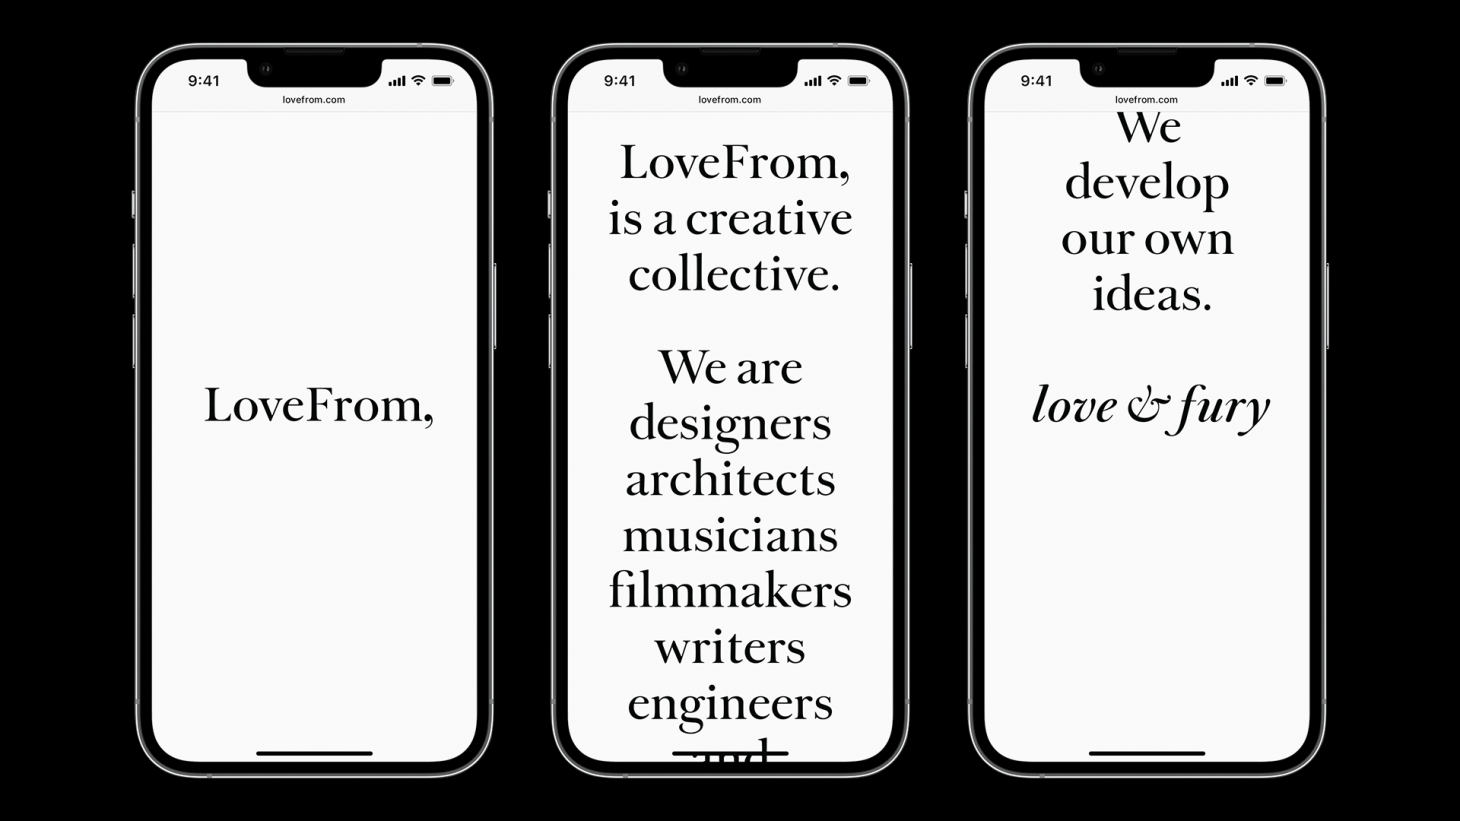 LoveFrom website launch –3-up mock-up on iPhone